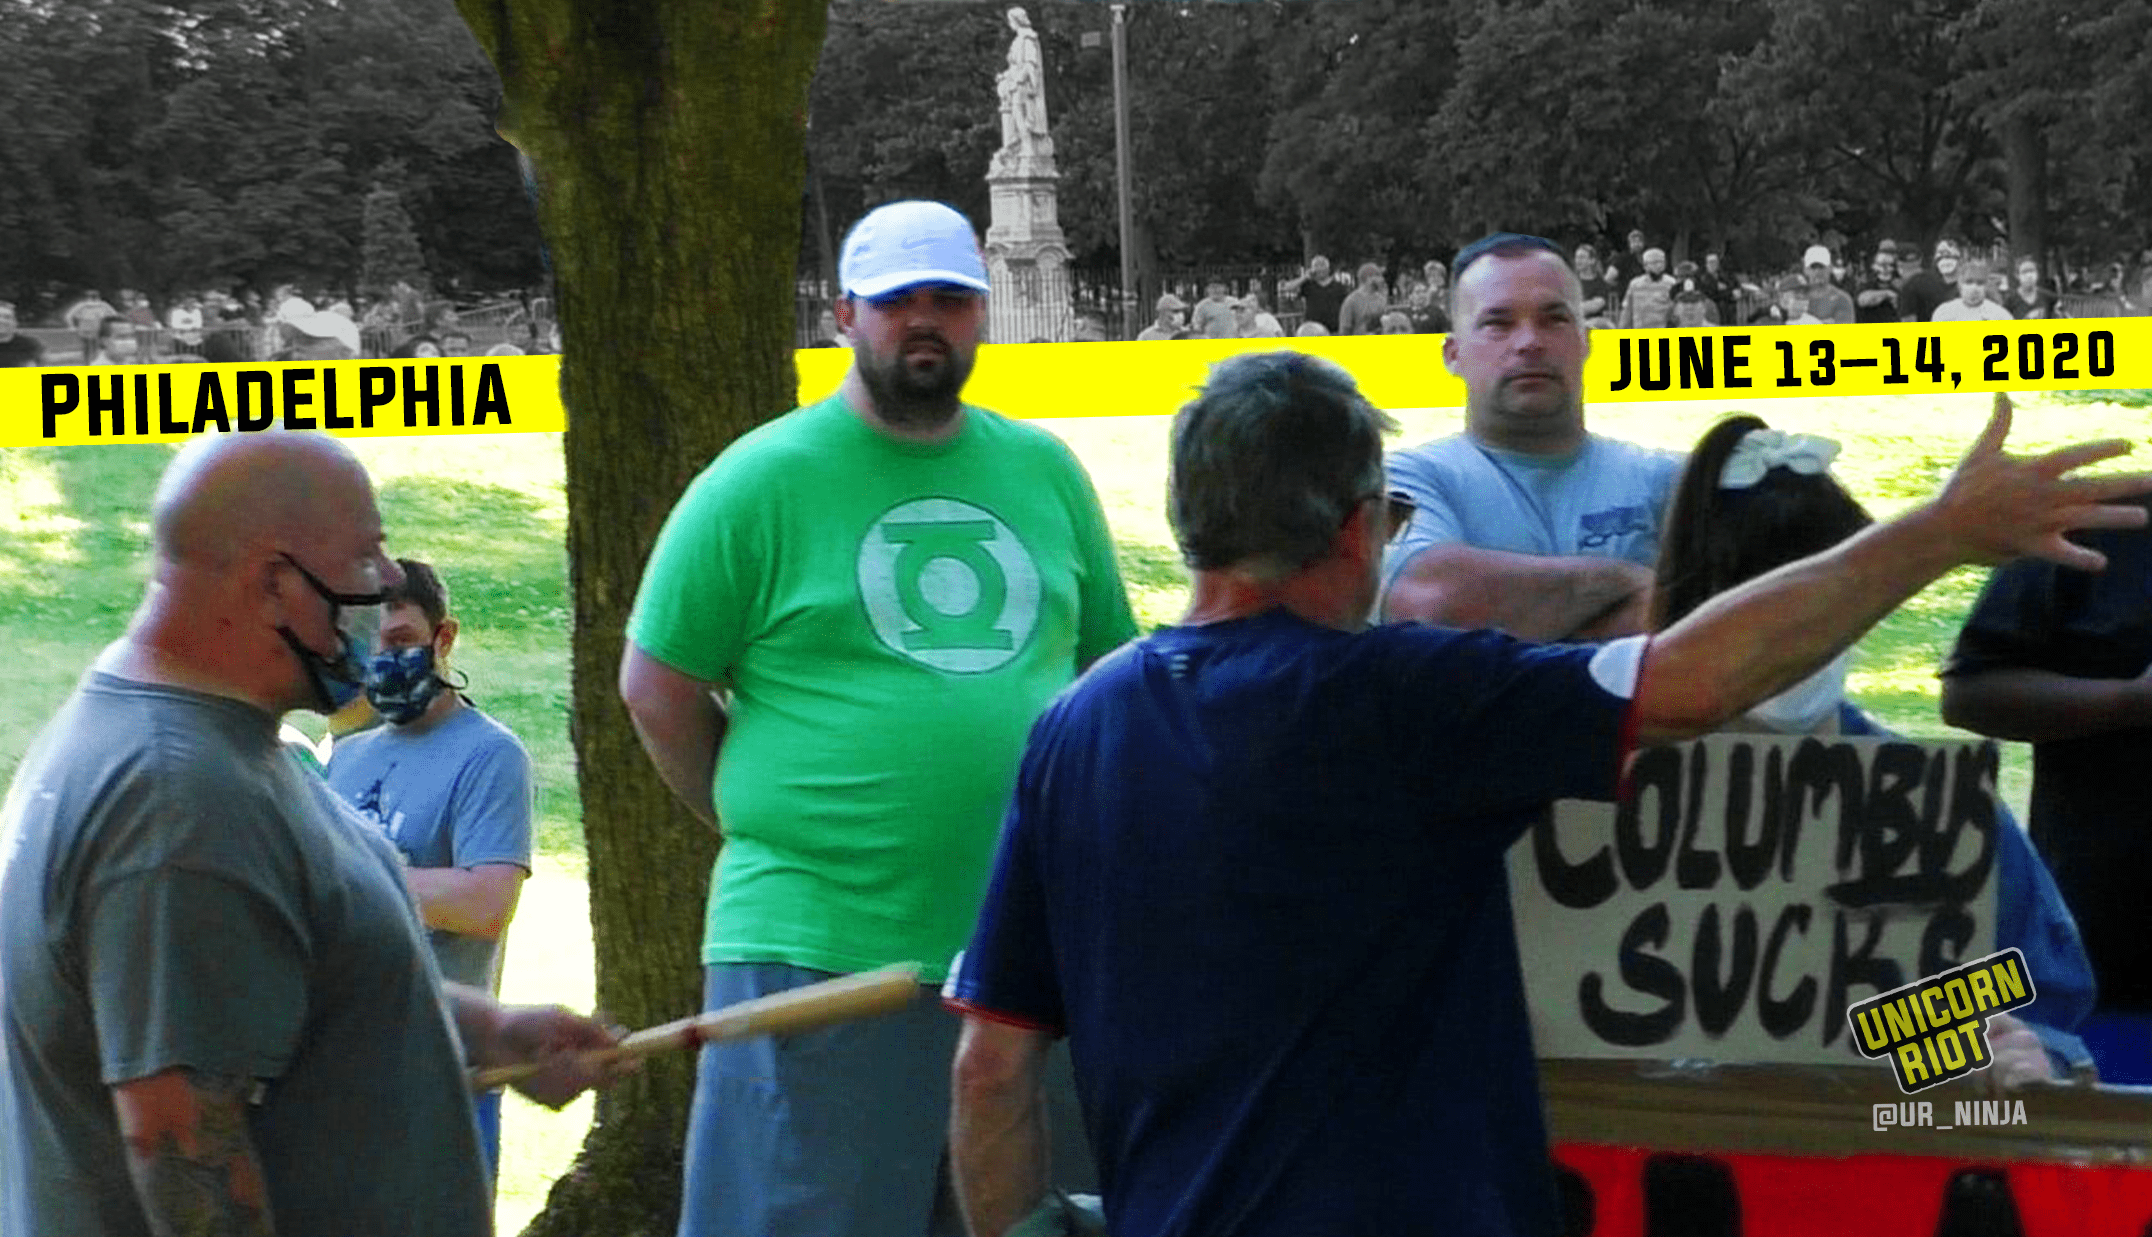 """image: South Philly residents confront anti-racist community members, one of whom has a sign """"Fuck Columbus."""" A man is gesturing at her with a bat. Above the scene is a yellow bar with date & location, Philadelphia, June 13 - 14, 2020. In the background as a composite, a crowd is gathered around the Columbus statue in Marconi Plaza in South Philly."""